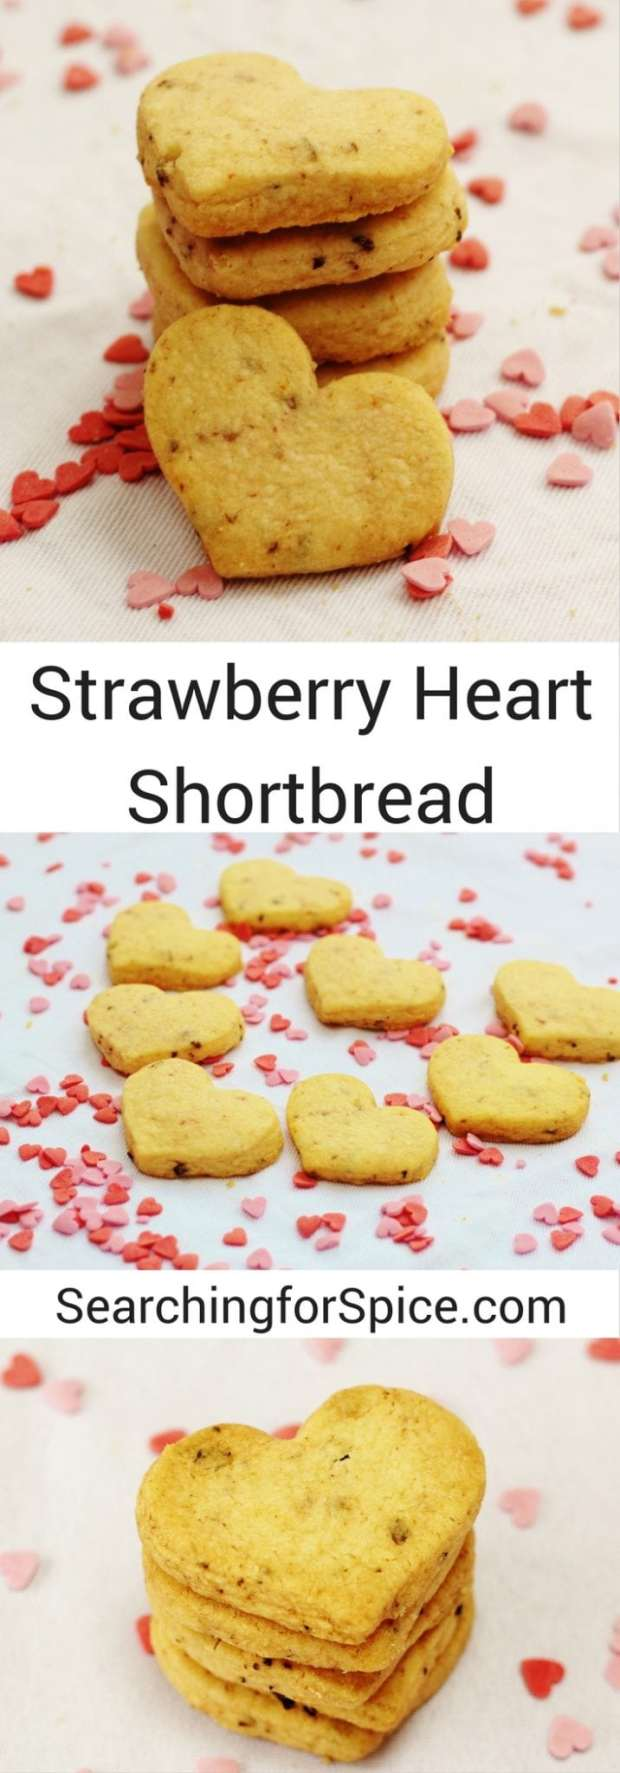 Strawberry Heart Shortbread Biscuits. These cute cookies are perfect as a sweet bite-sized snack or why not give as a gift?